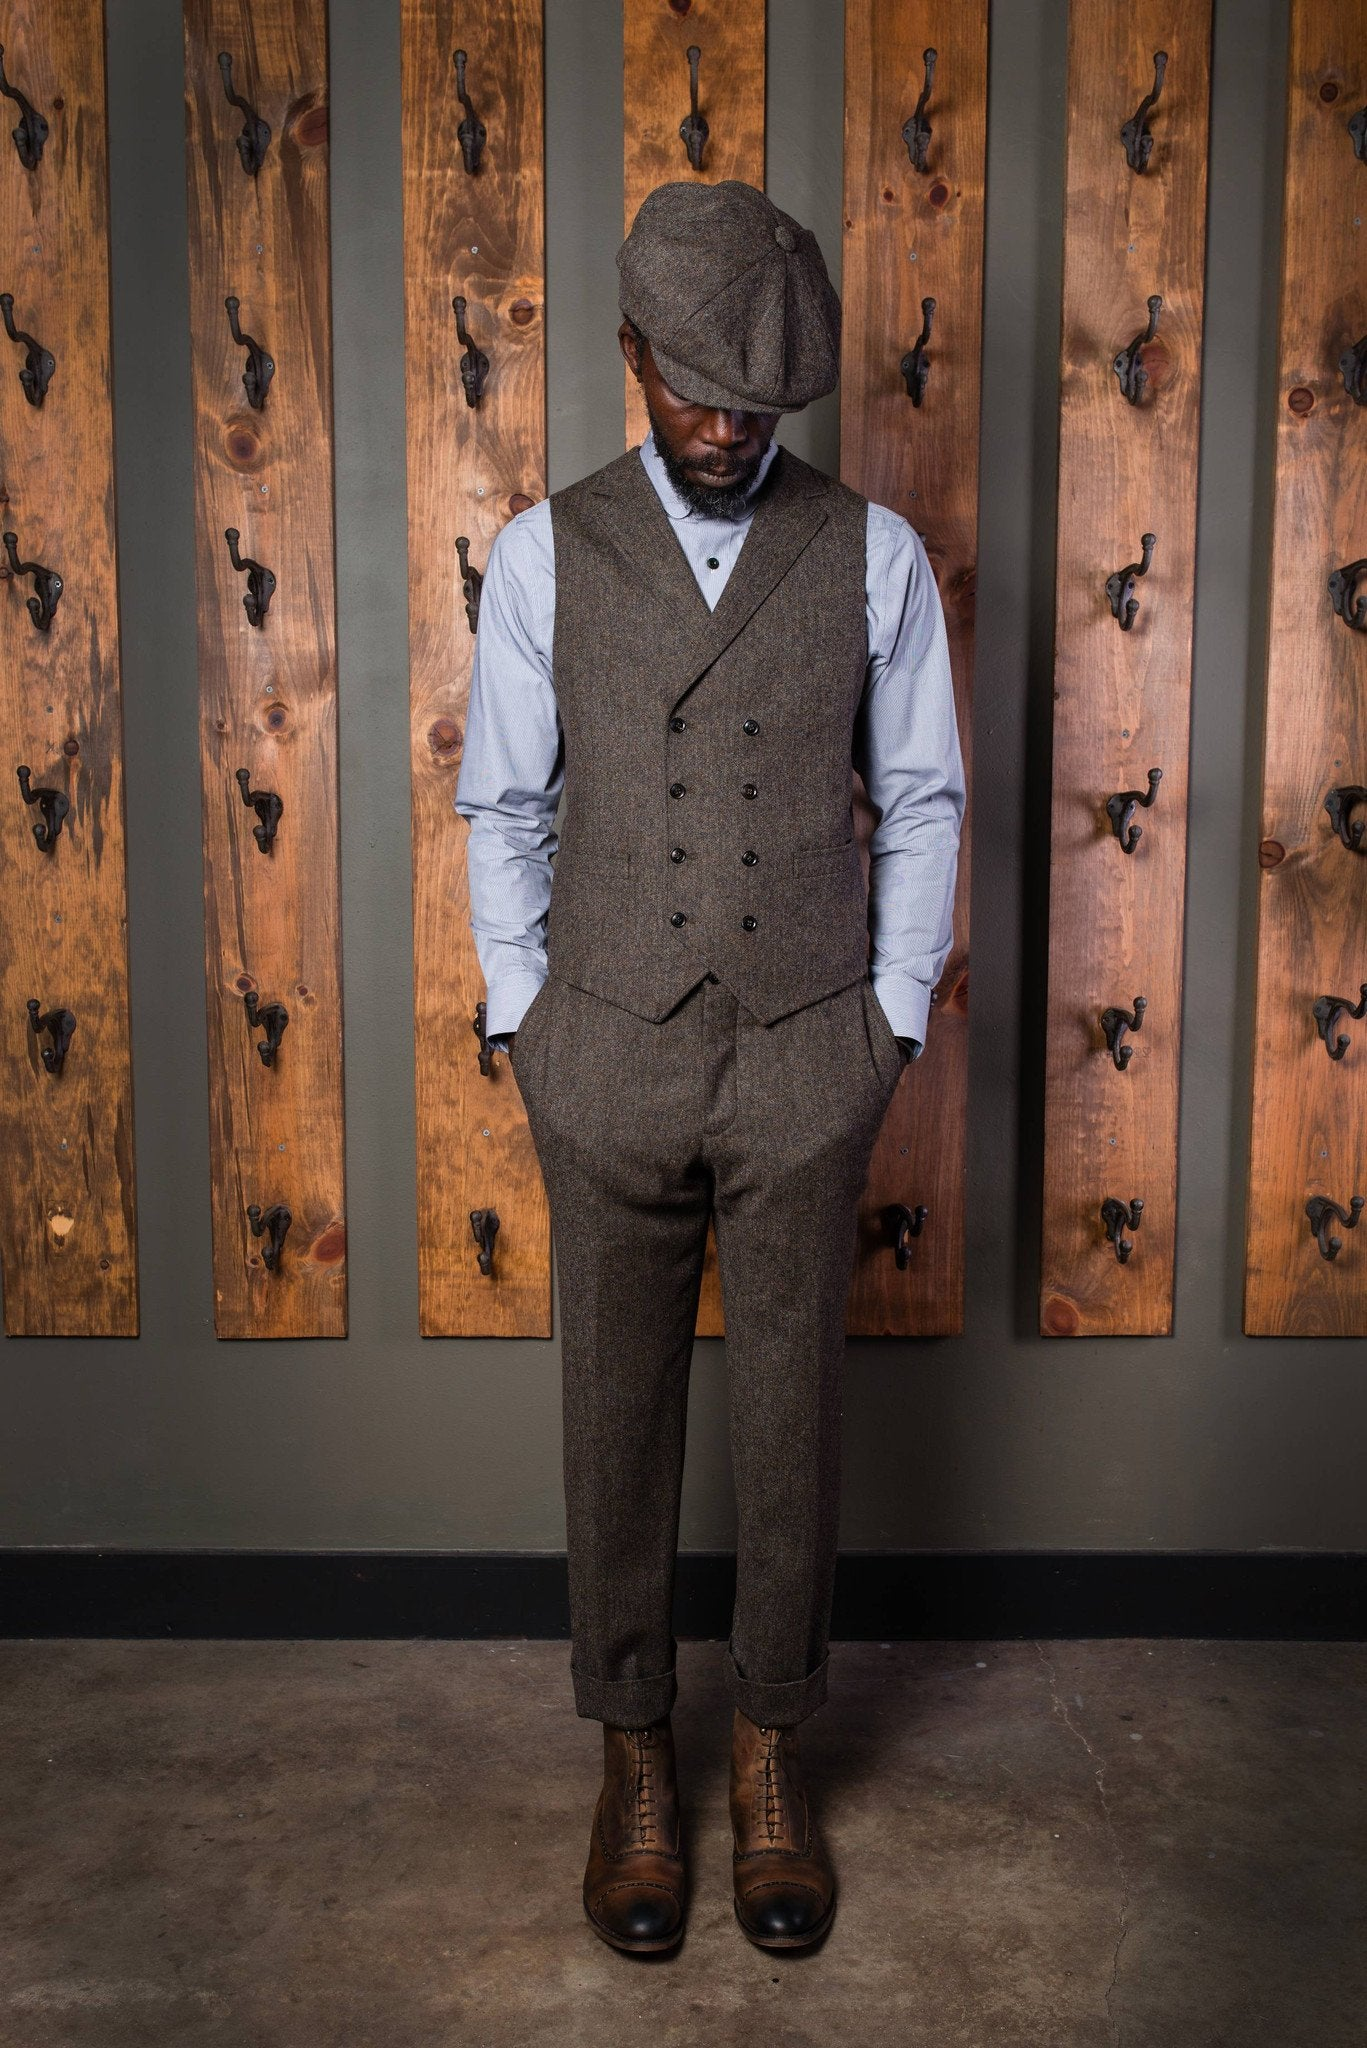 Bykowski Tailor & Garb Edwardian double breasted waistcoat Dapper Barbershop 1930's 1910's 1800's Gatsby peaky blinders prohibition  Made in USA lapel vest heritage clothing Handcrafted English Tweed slim tailored fit